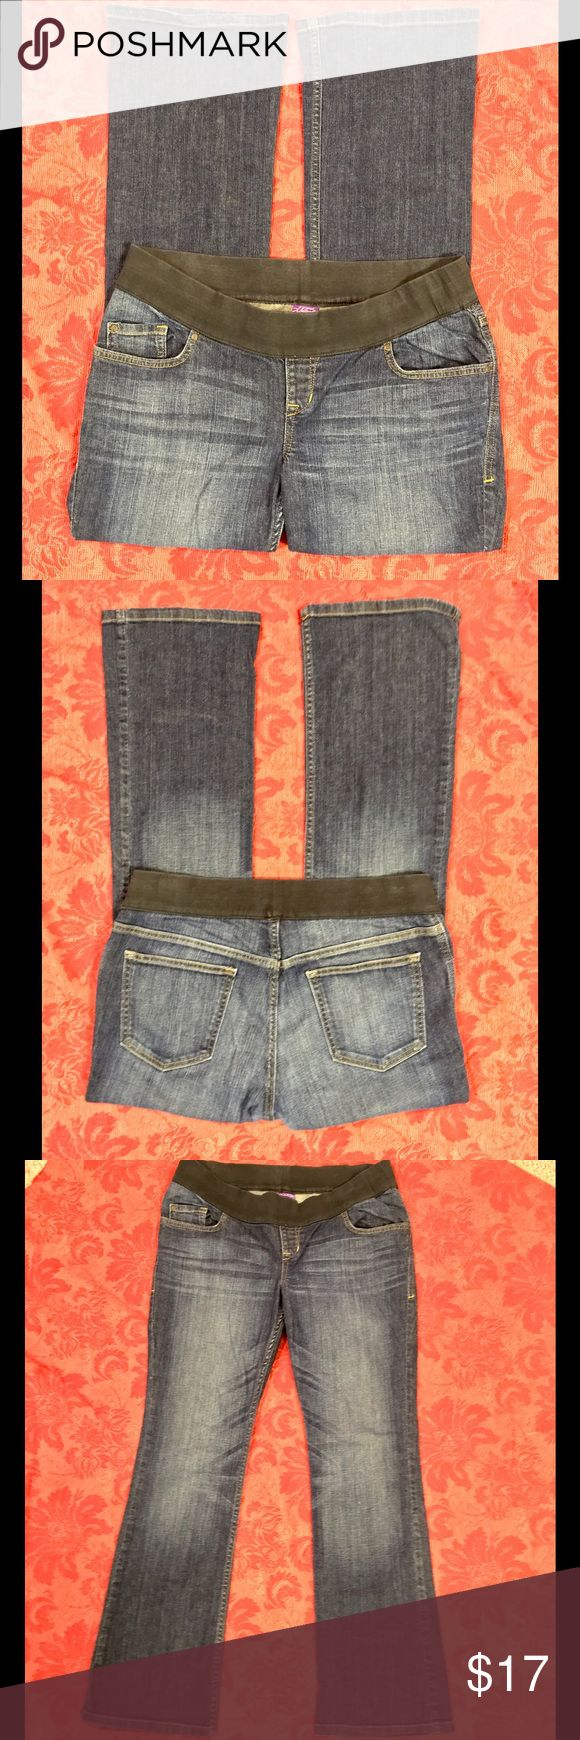 """Old Navy Maternity Jeans Classic boot cut style Maternity jeans from Old Navy. Good condition, medium wash. Size 12. Inseam is approx 32"""". Old Navy Jeans Boot Cut"""